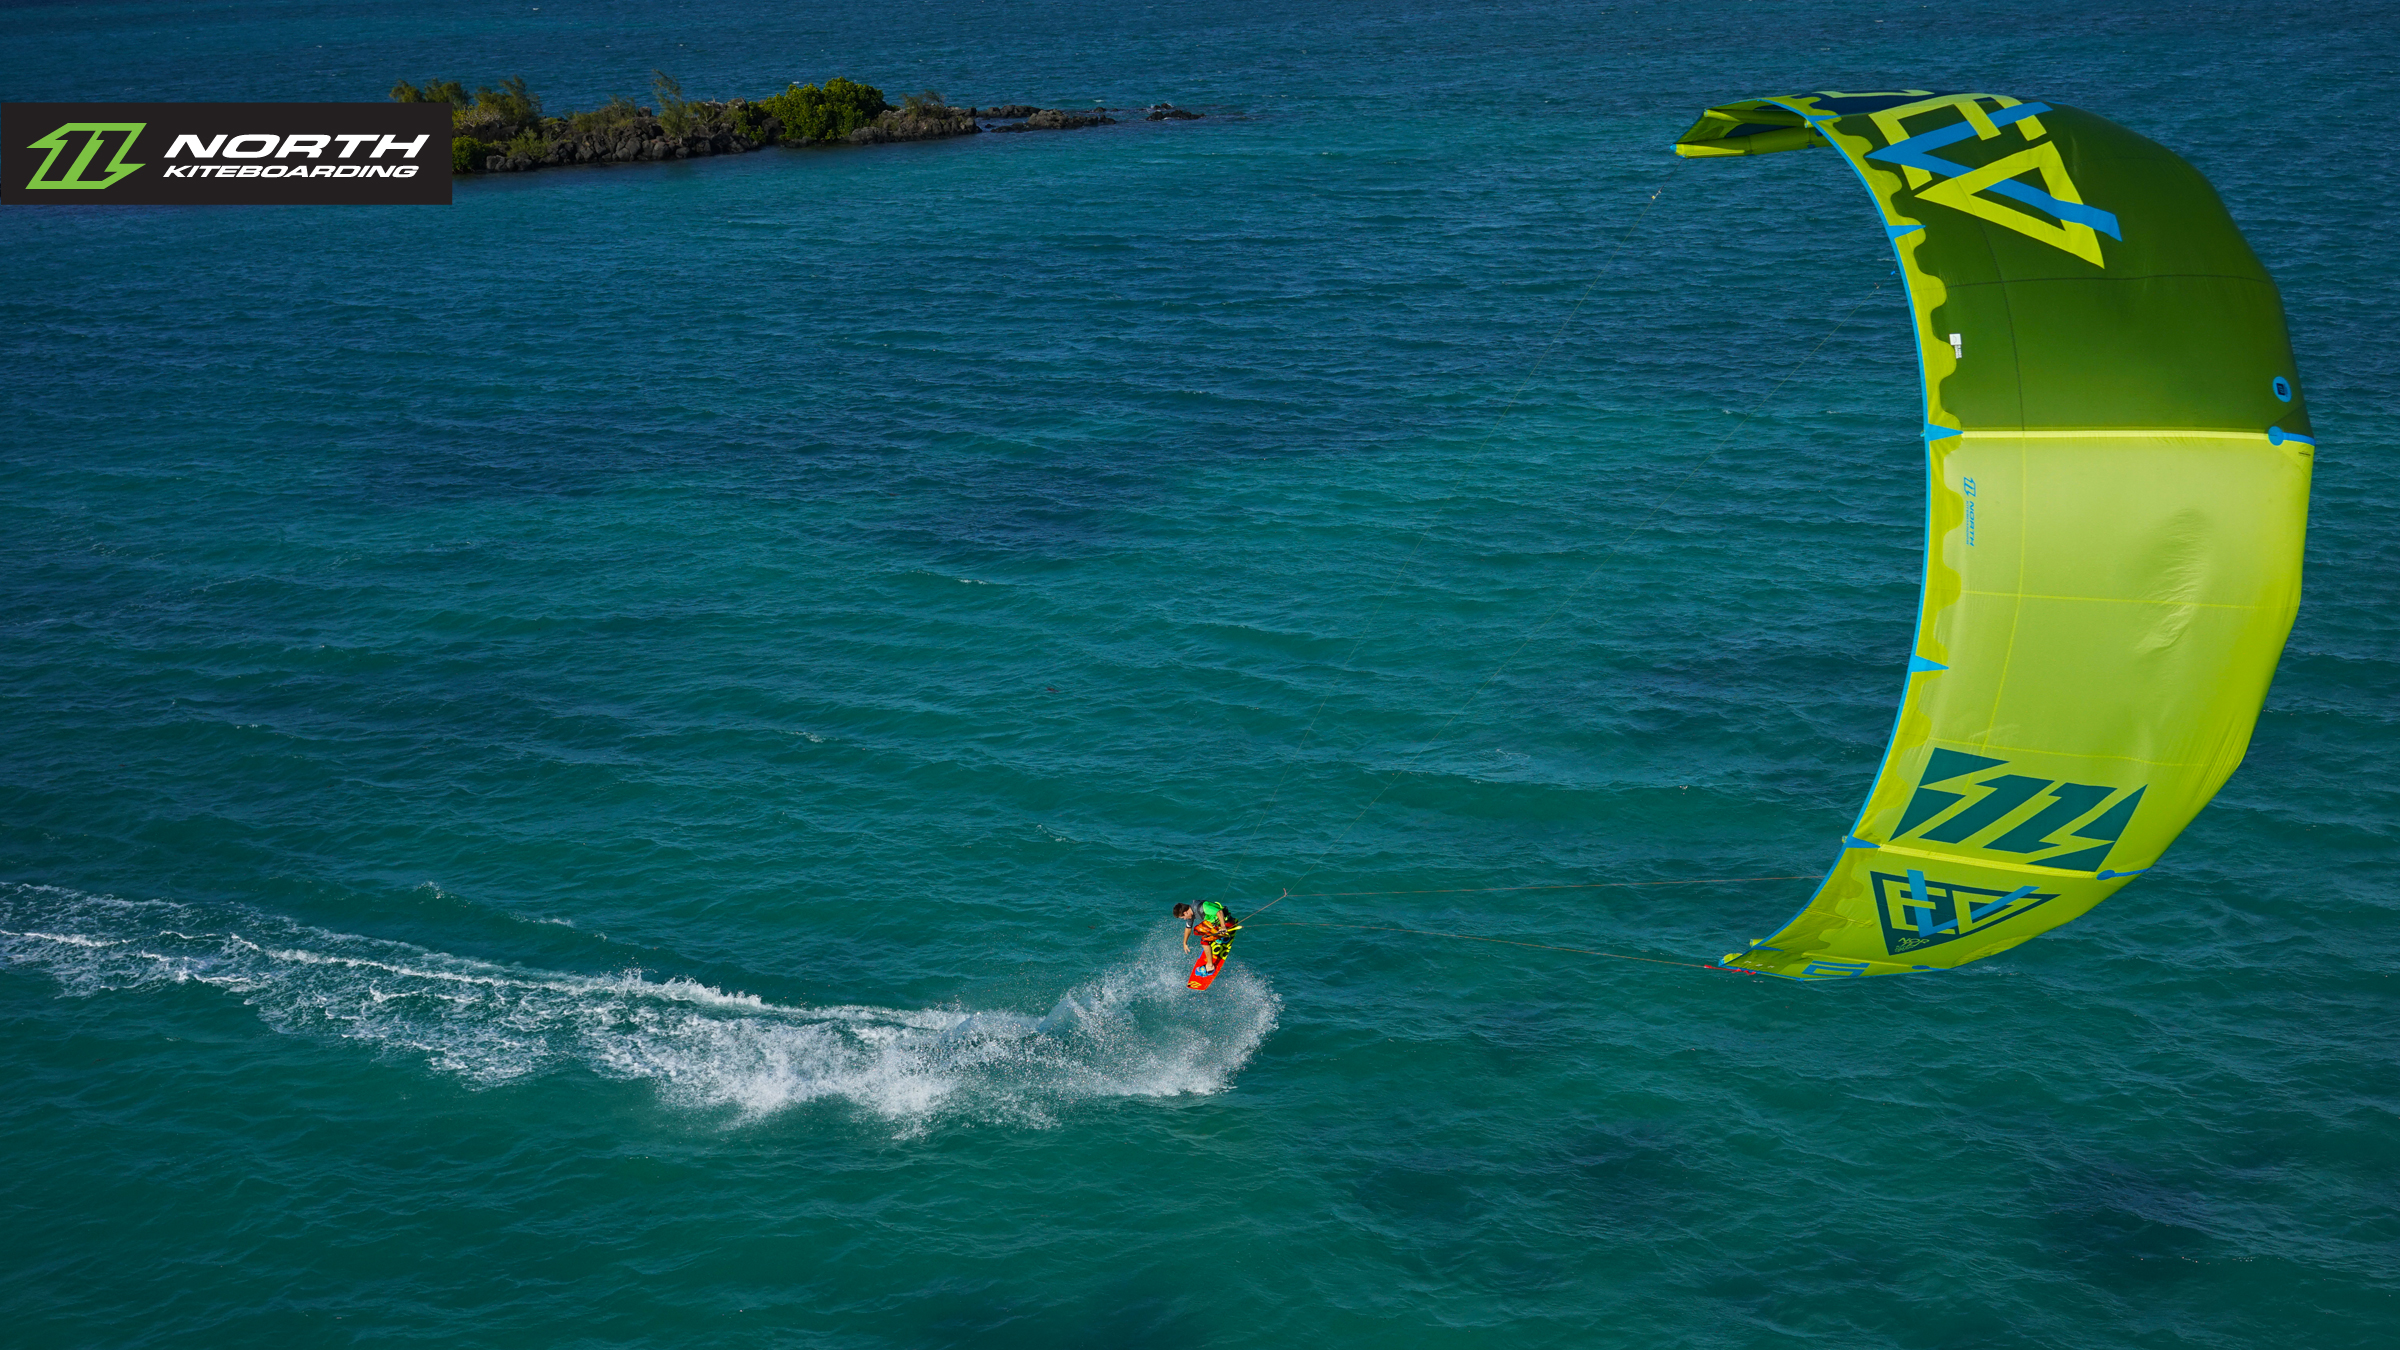 kitesurf wallpaper image - The 2015 North Evo as seen from above - kitesurfing - in resolution: High Definition - HD 16:9 2400 X 1350